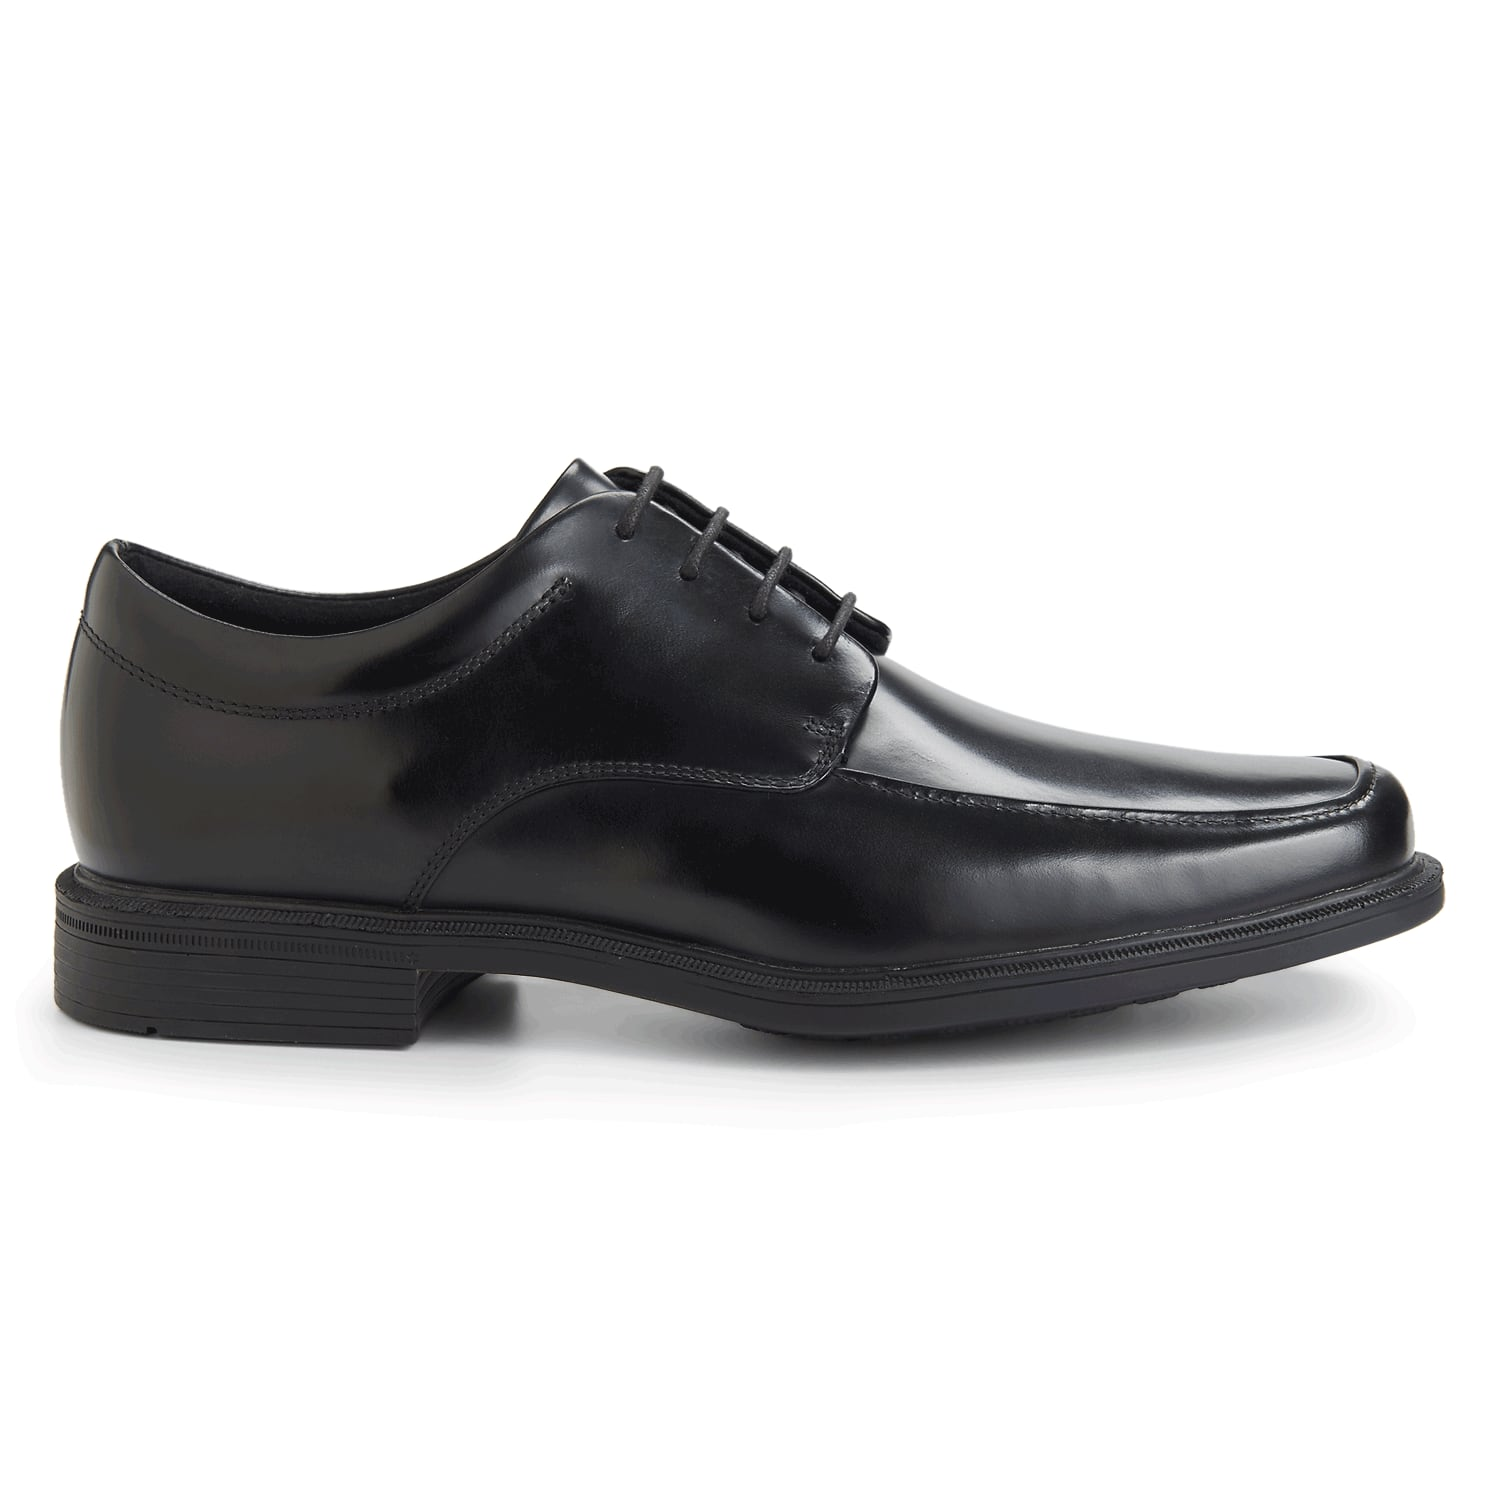 Rockport Flash Sale: Extra 30% Off Men's and Women's Shoes + Free Shipping (Rockport Canada 40% Off + Free Shipping)